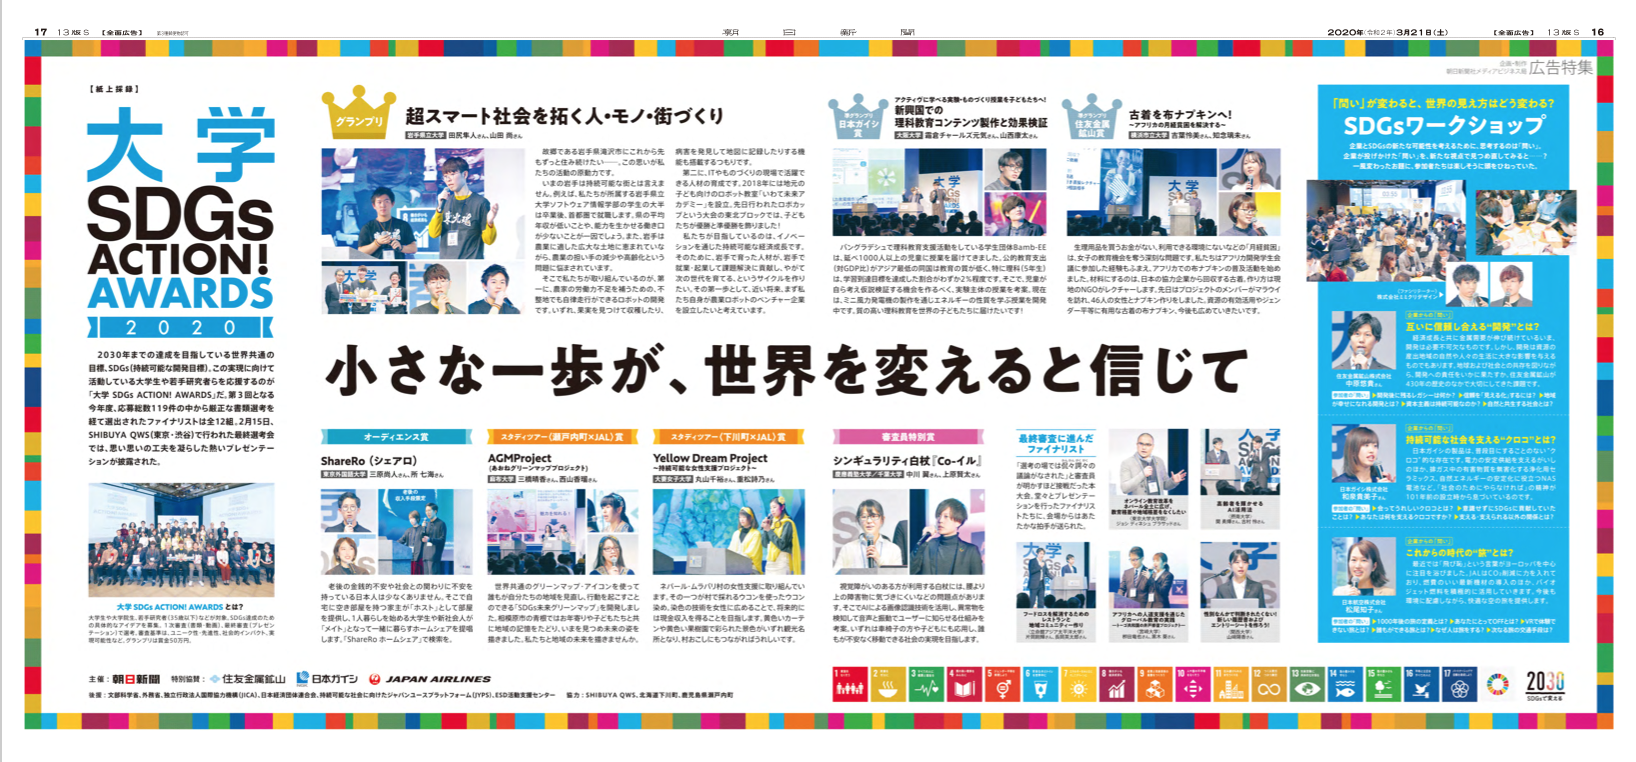 AGM Project wins SDGs contest in Japan!